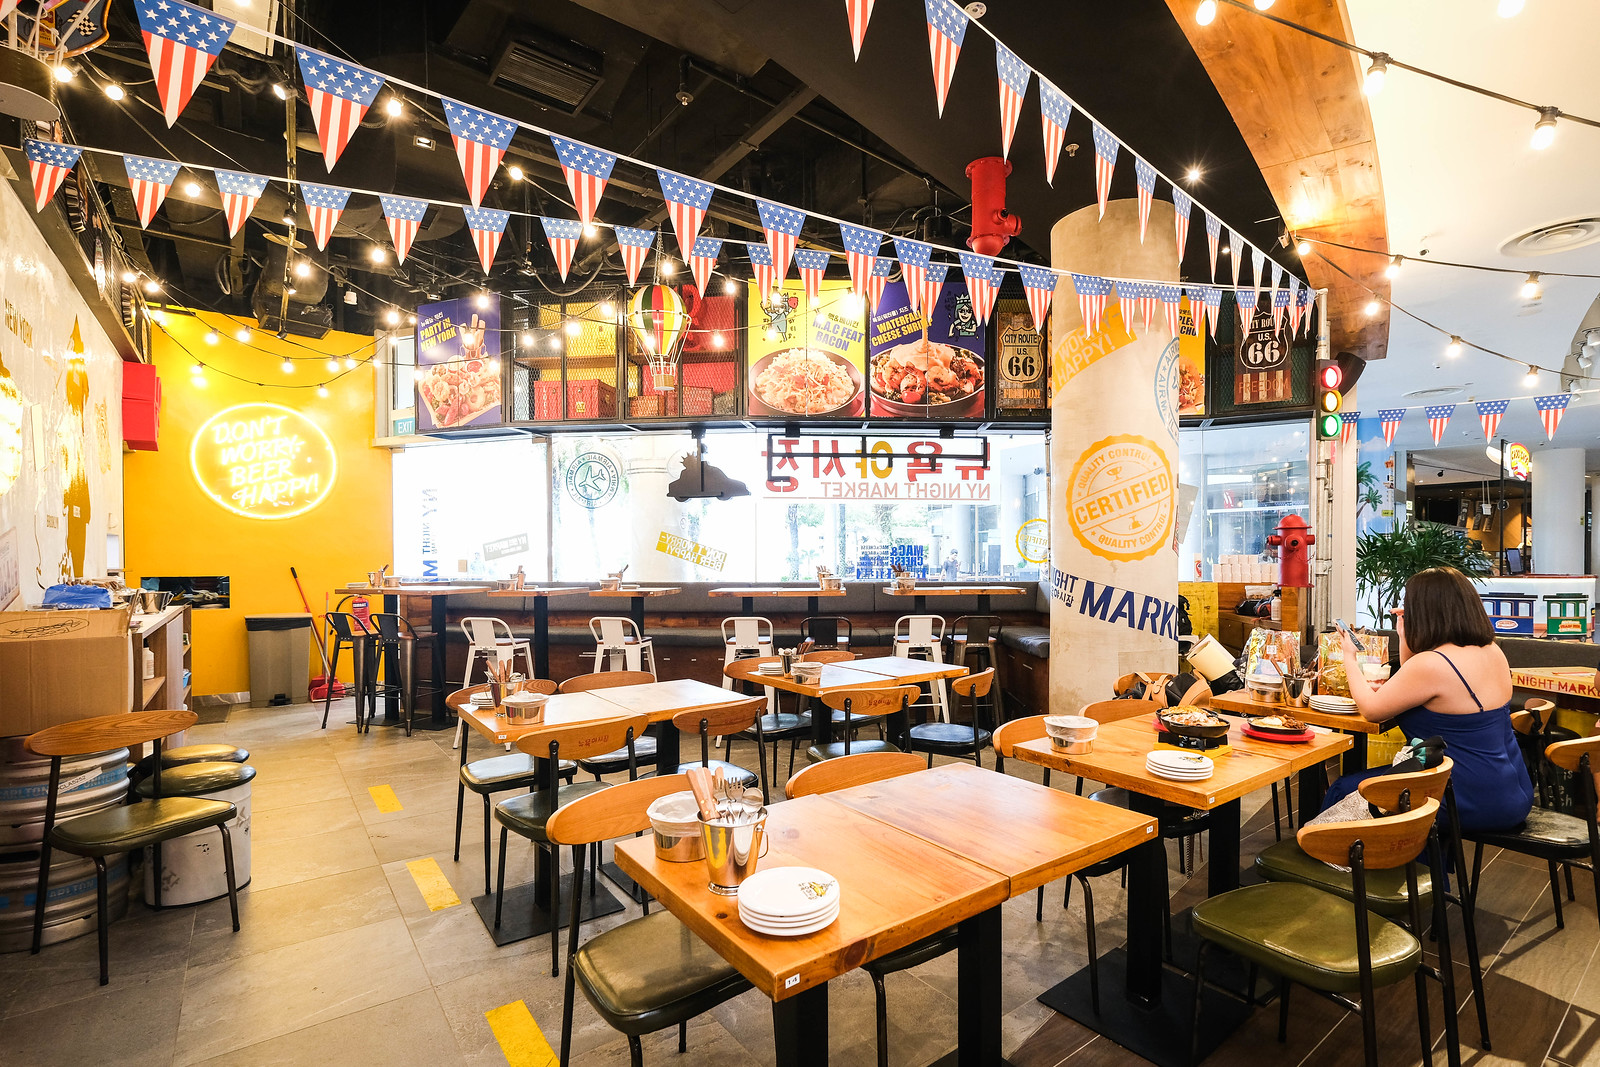 NY Night Market is a Korean-American restaurant in Singapore.